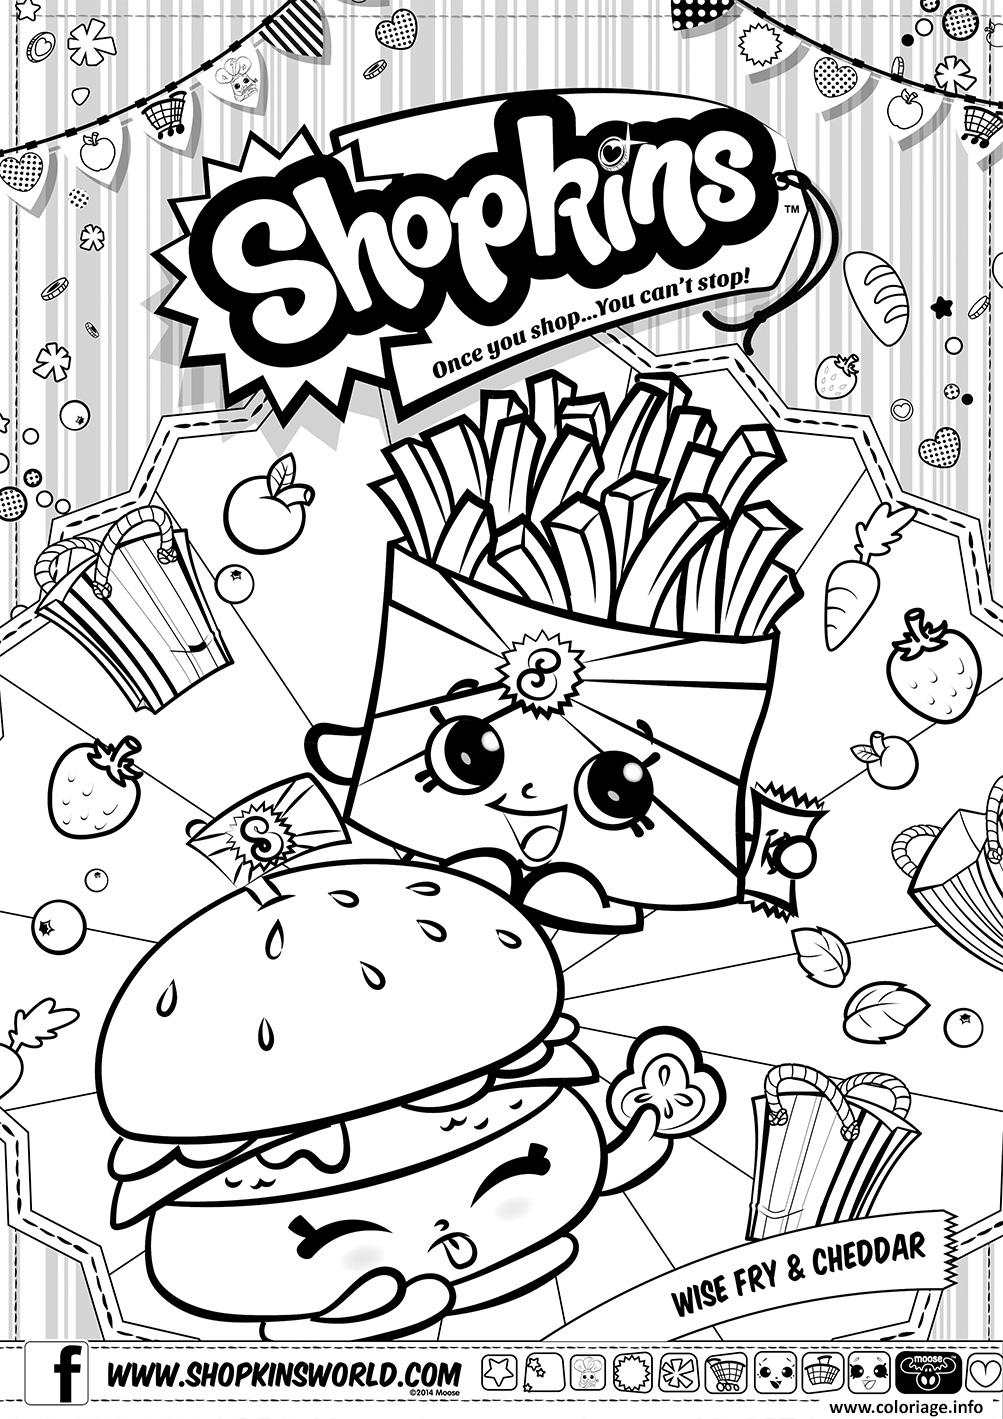 Shopkin Coloring Pages That You